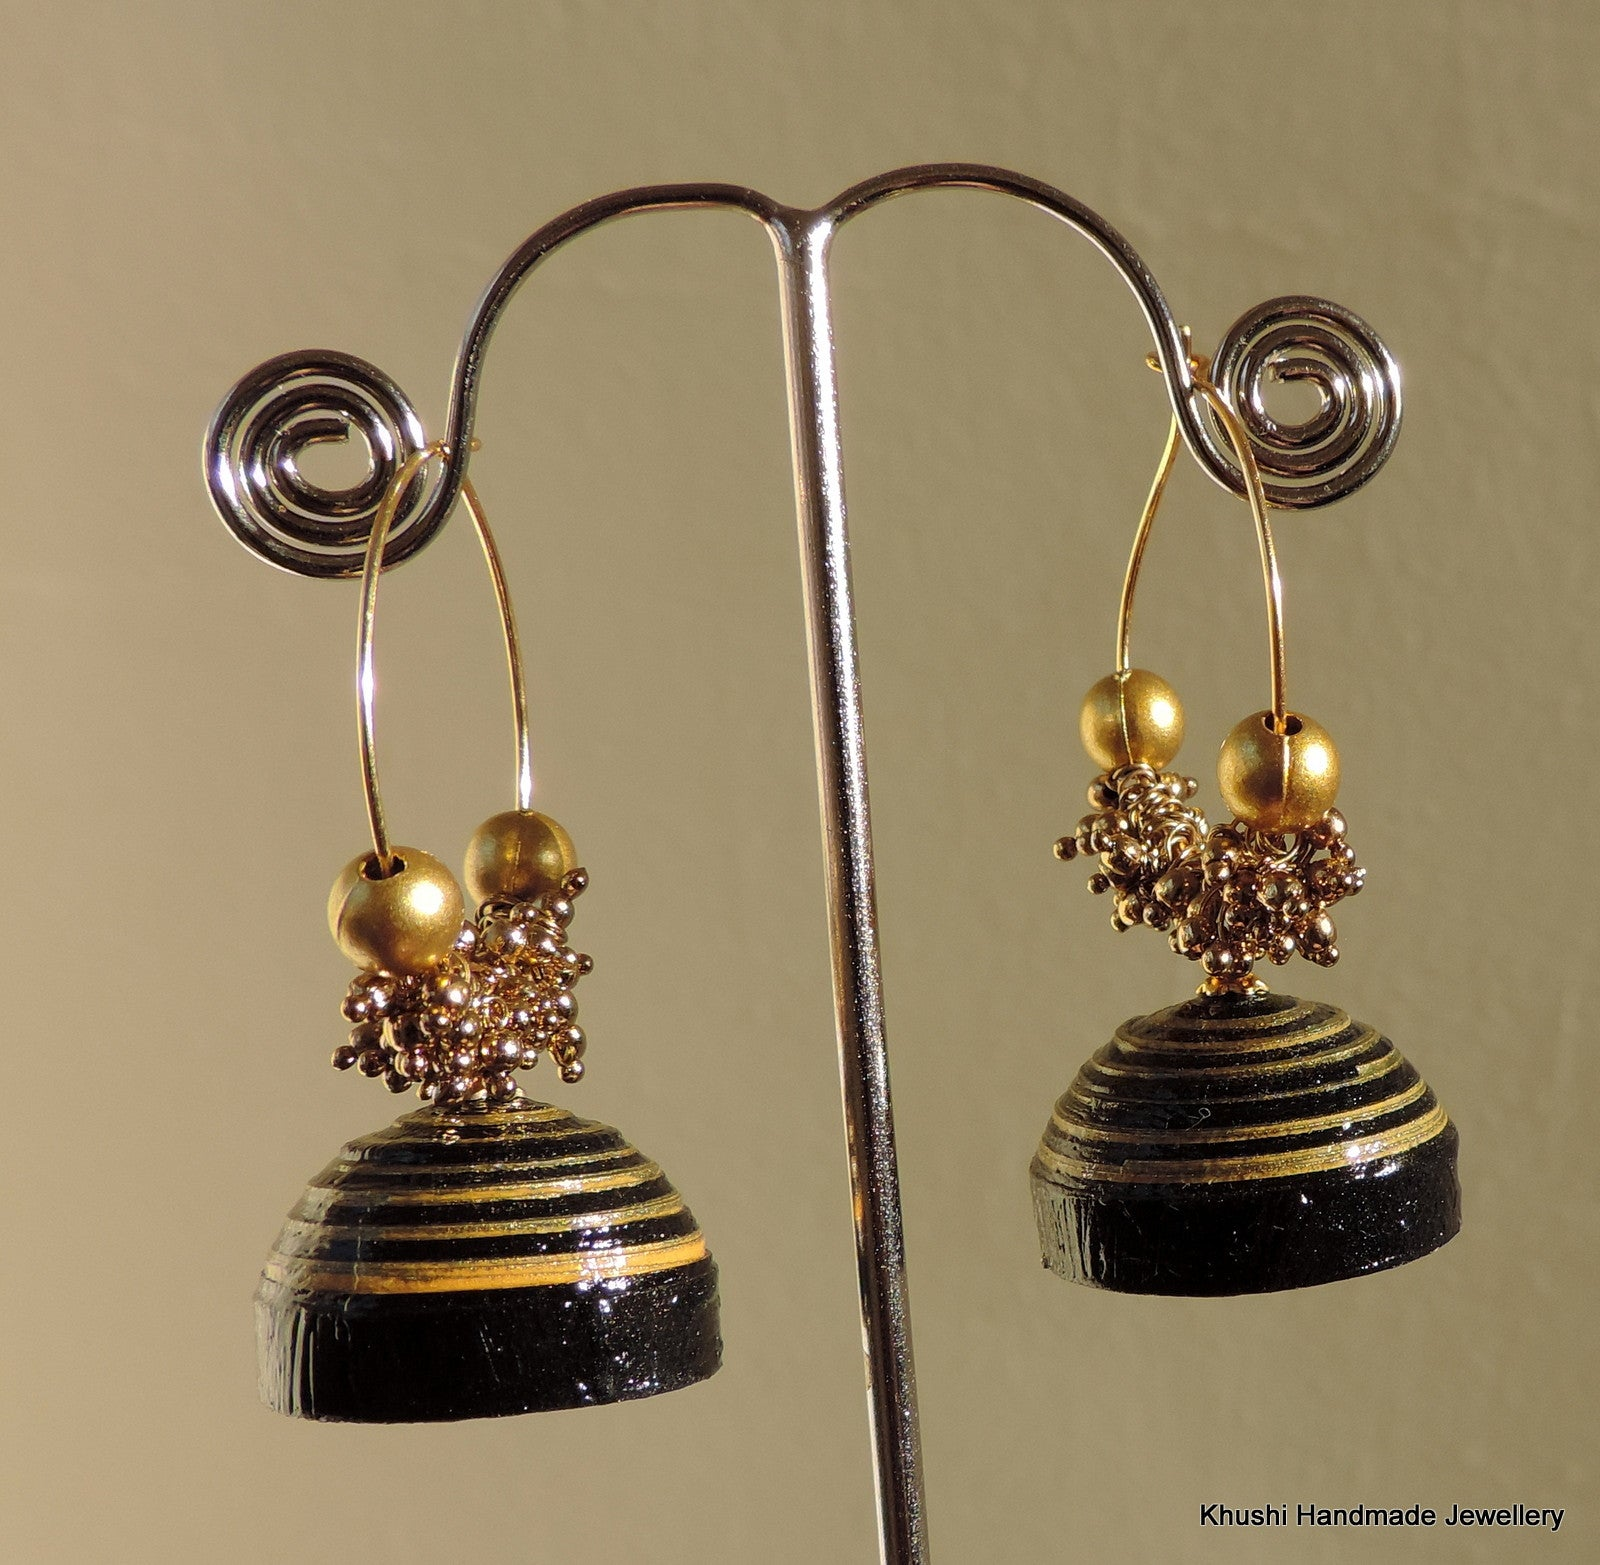 Black and gold Jhumka - Khushi Handmade Jewellery